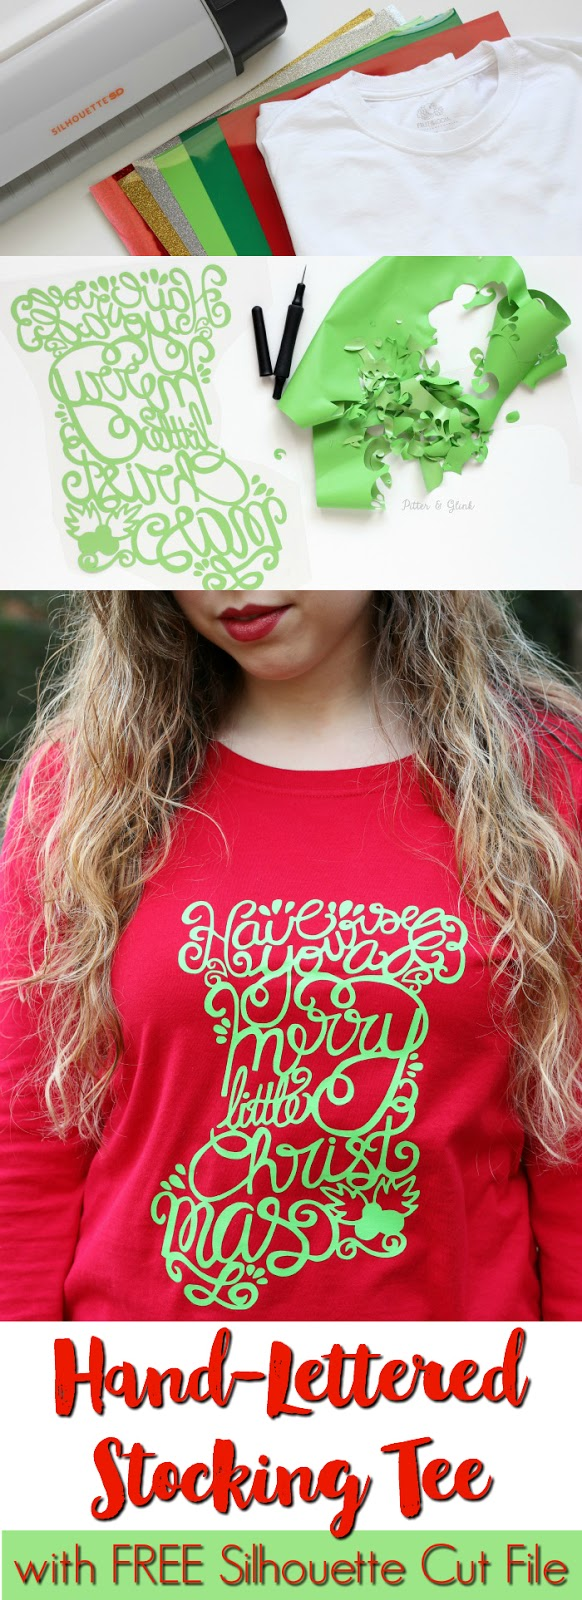 DIY Hand-Lettered Christmas Stocking Graphic Tee with Free Silhouette Cut File | www.pitterandglink.com